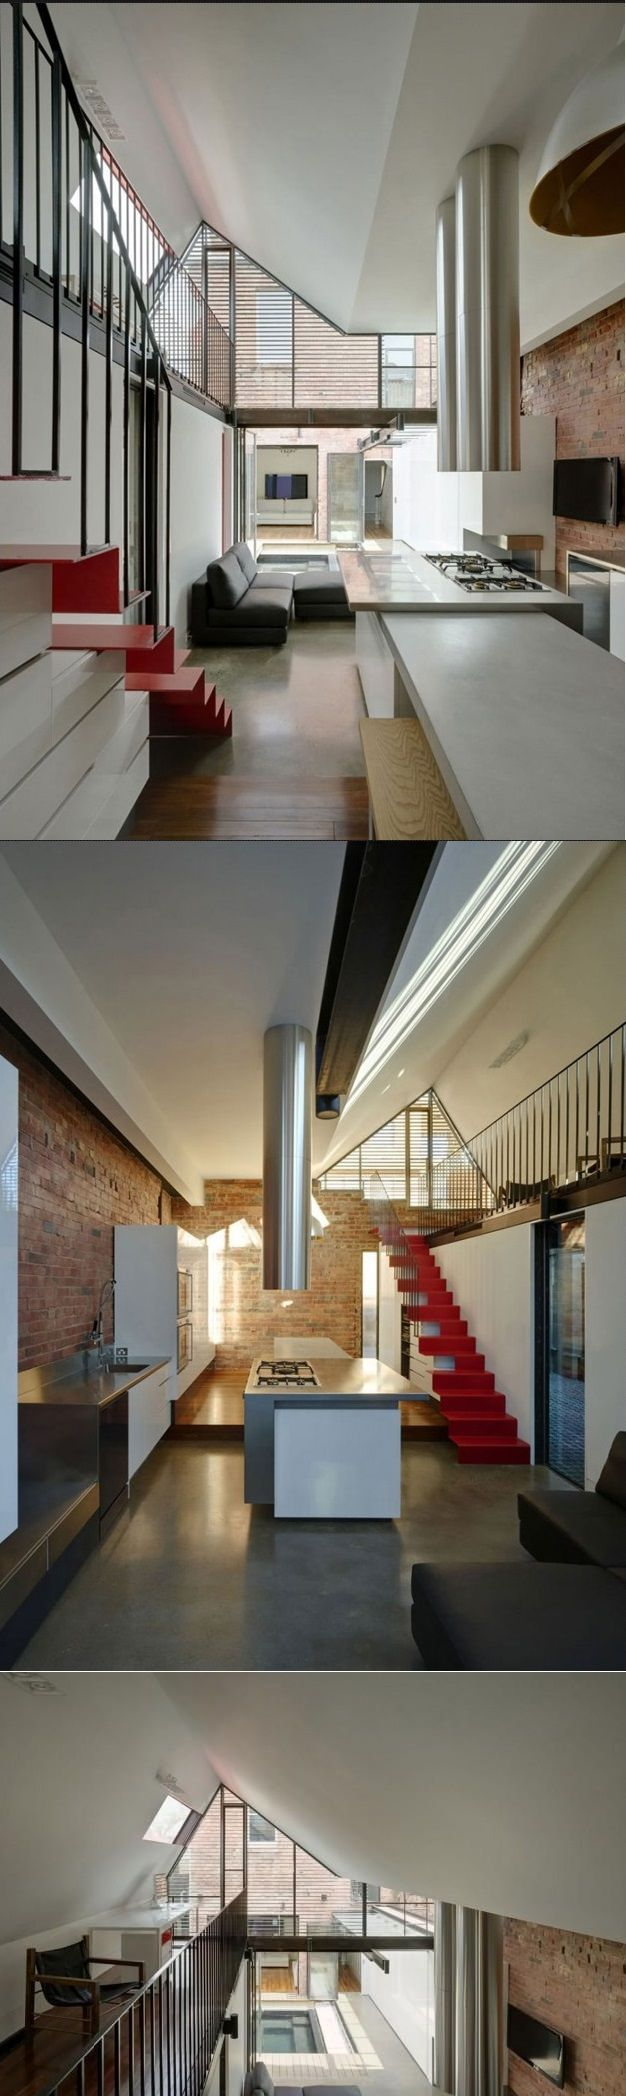 Vader house by andrew maynard architects architectsbuilding homesarchitecture